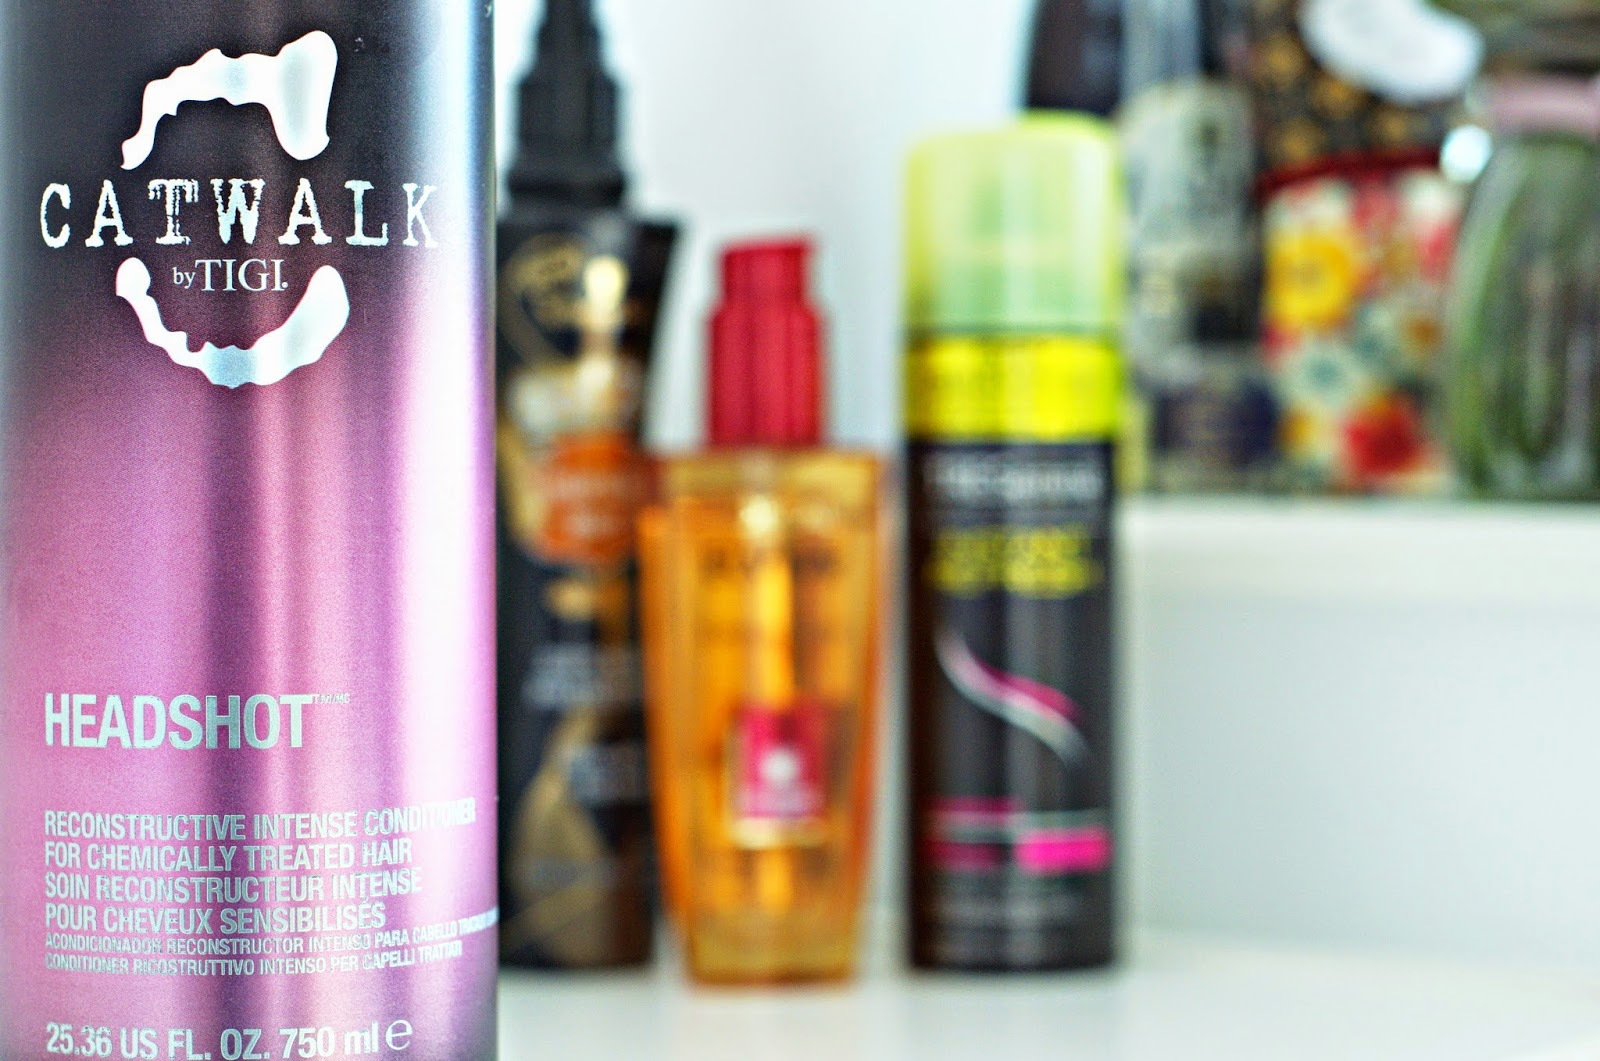 My Hair Care Routine: Catwalk TIGI Headshot